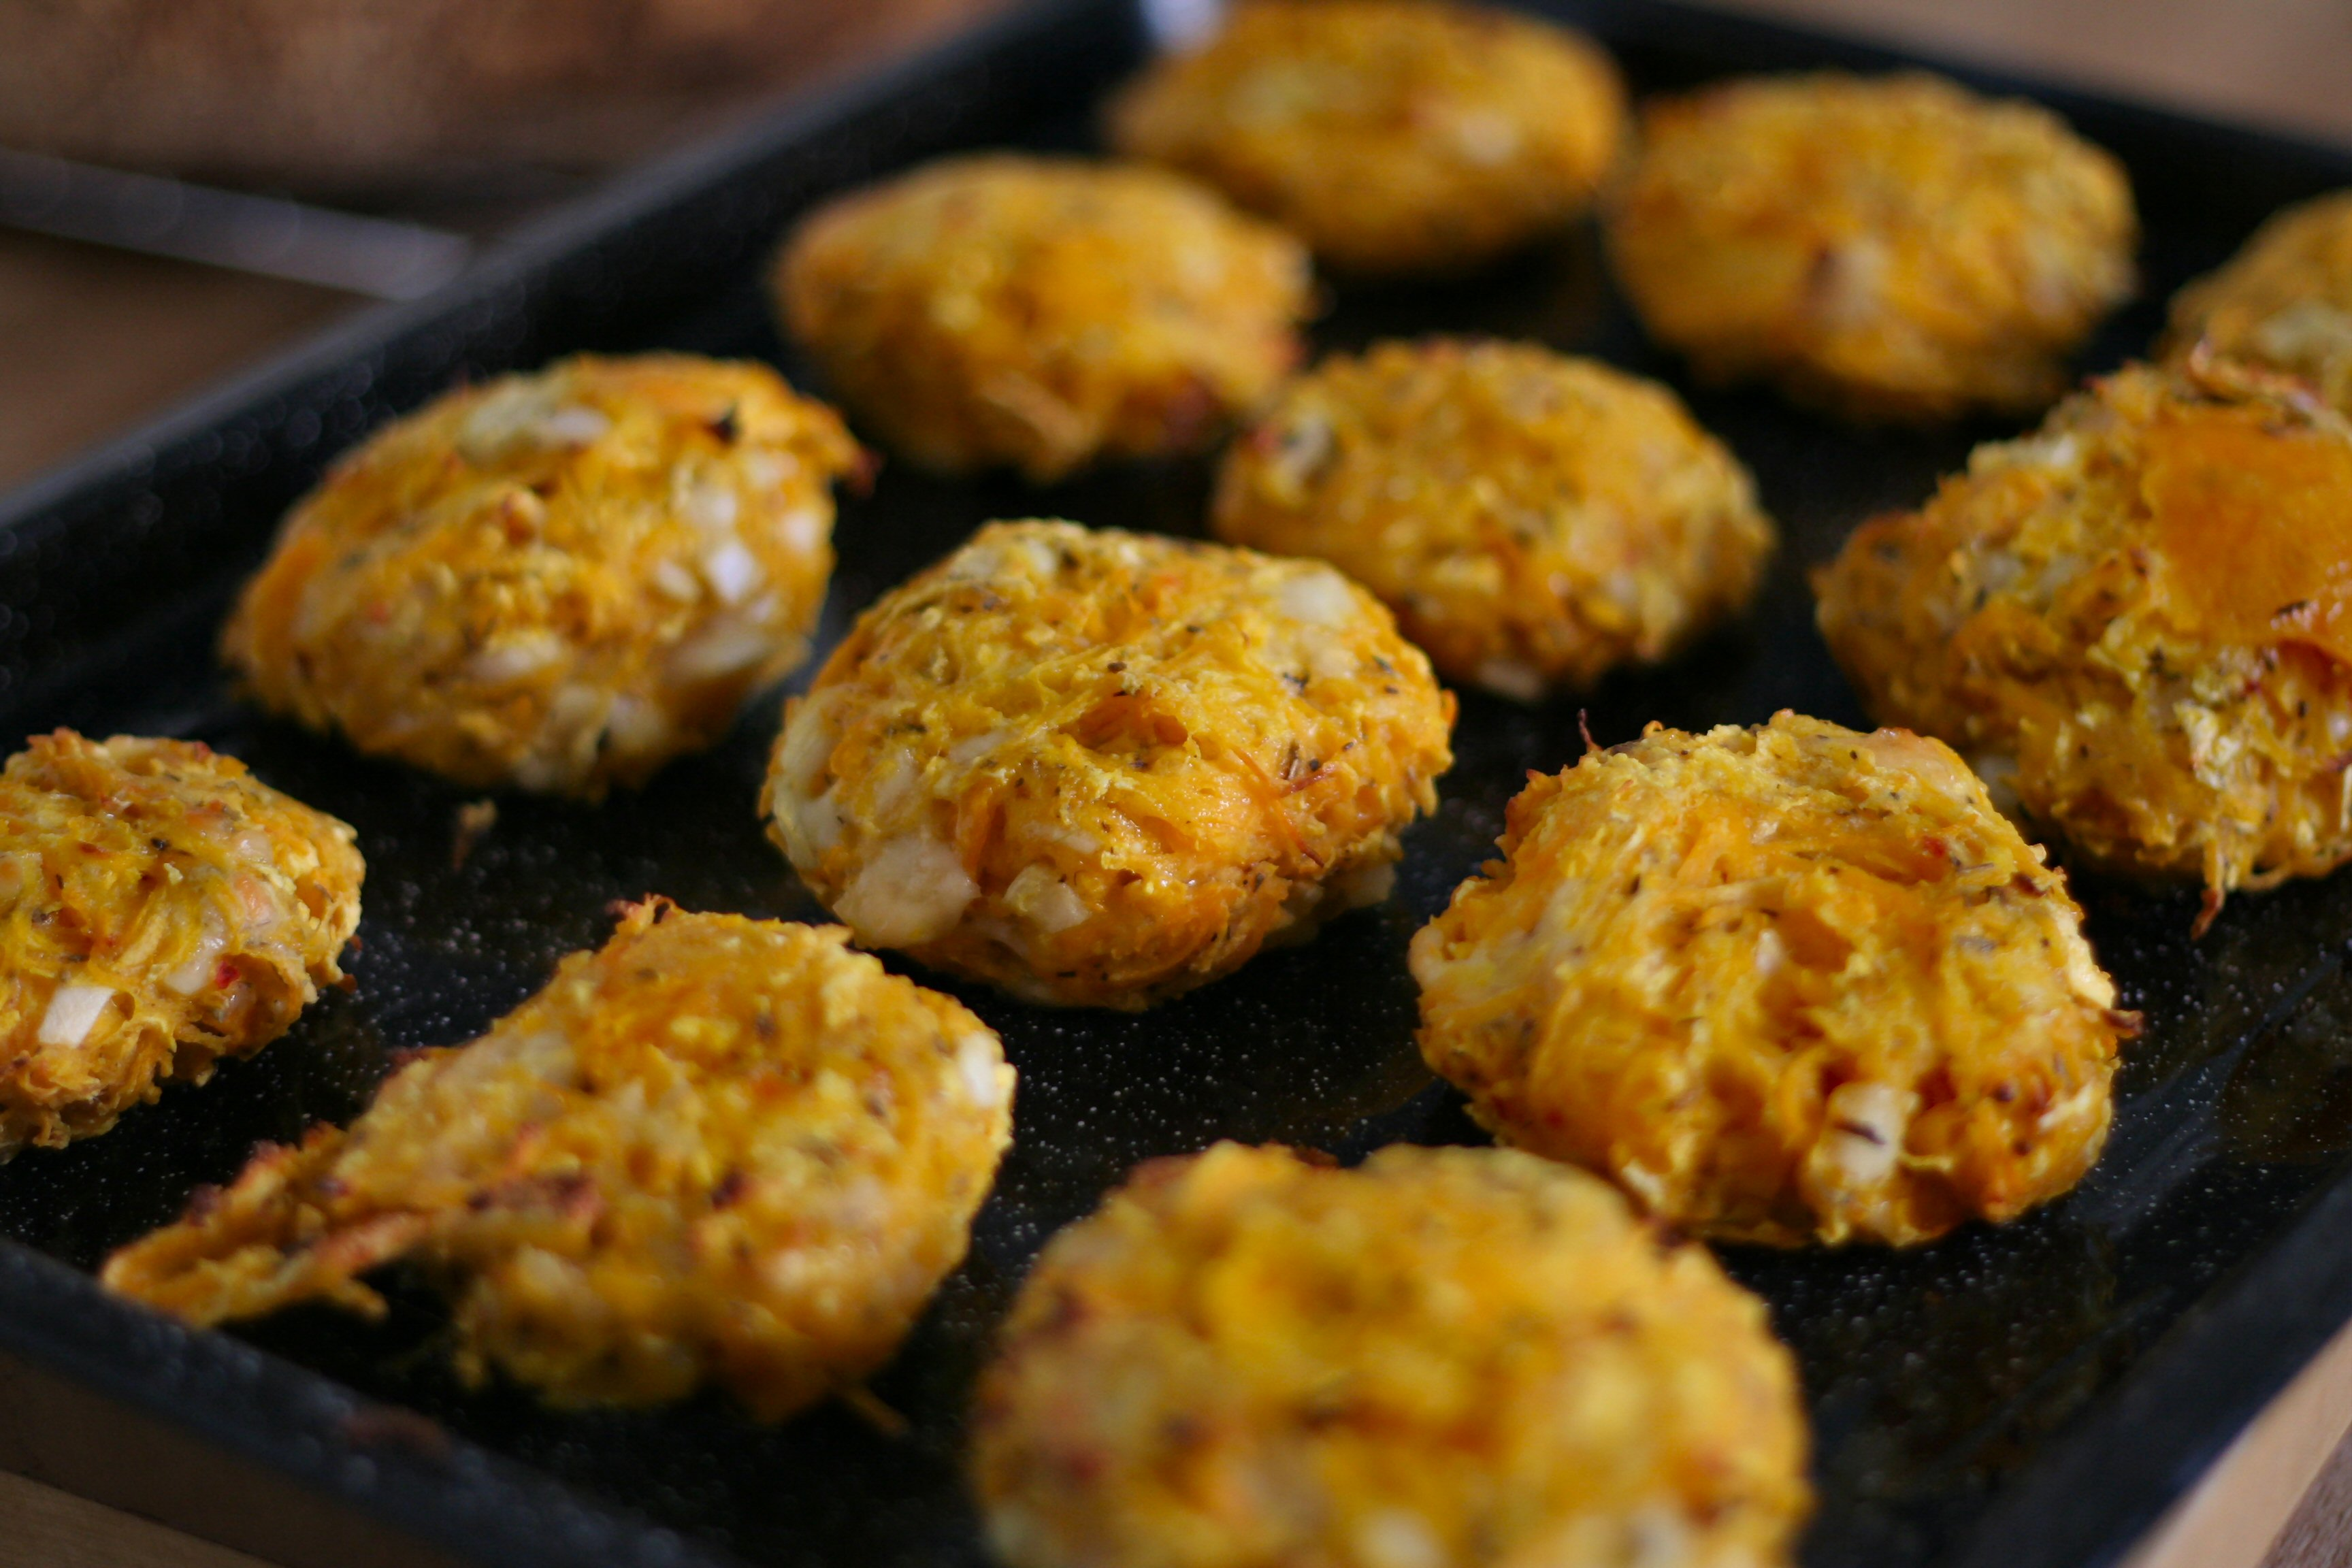 Squash & manchego patties on baking tray